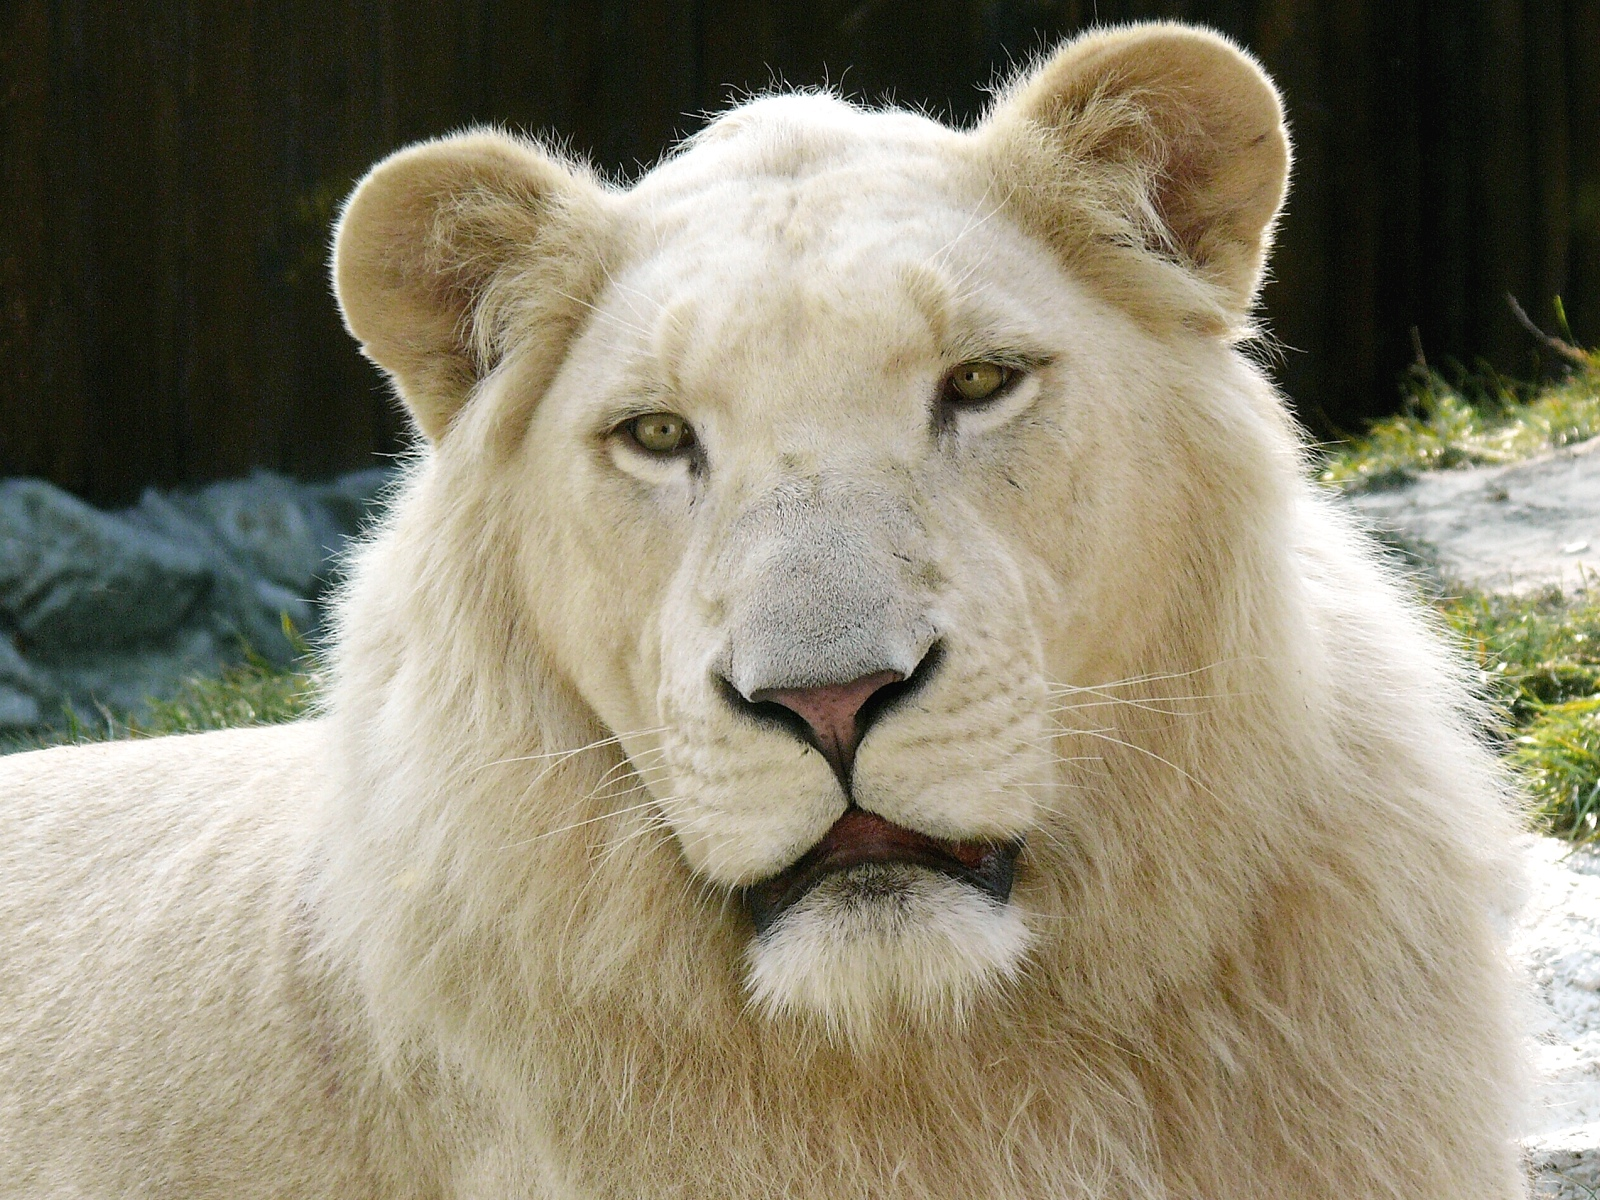 http://upload.wikimedia.org/wikipedia/commons/e/e7/White_Lion.jpg